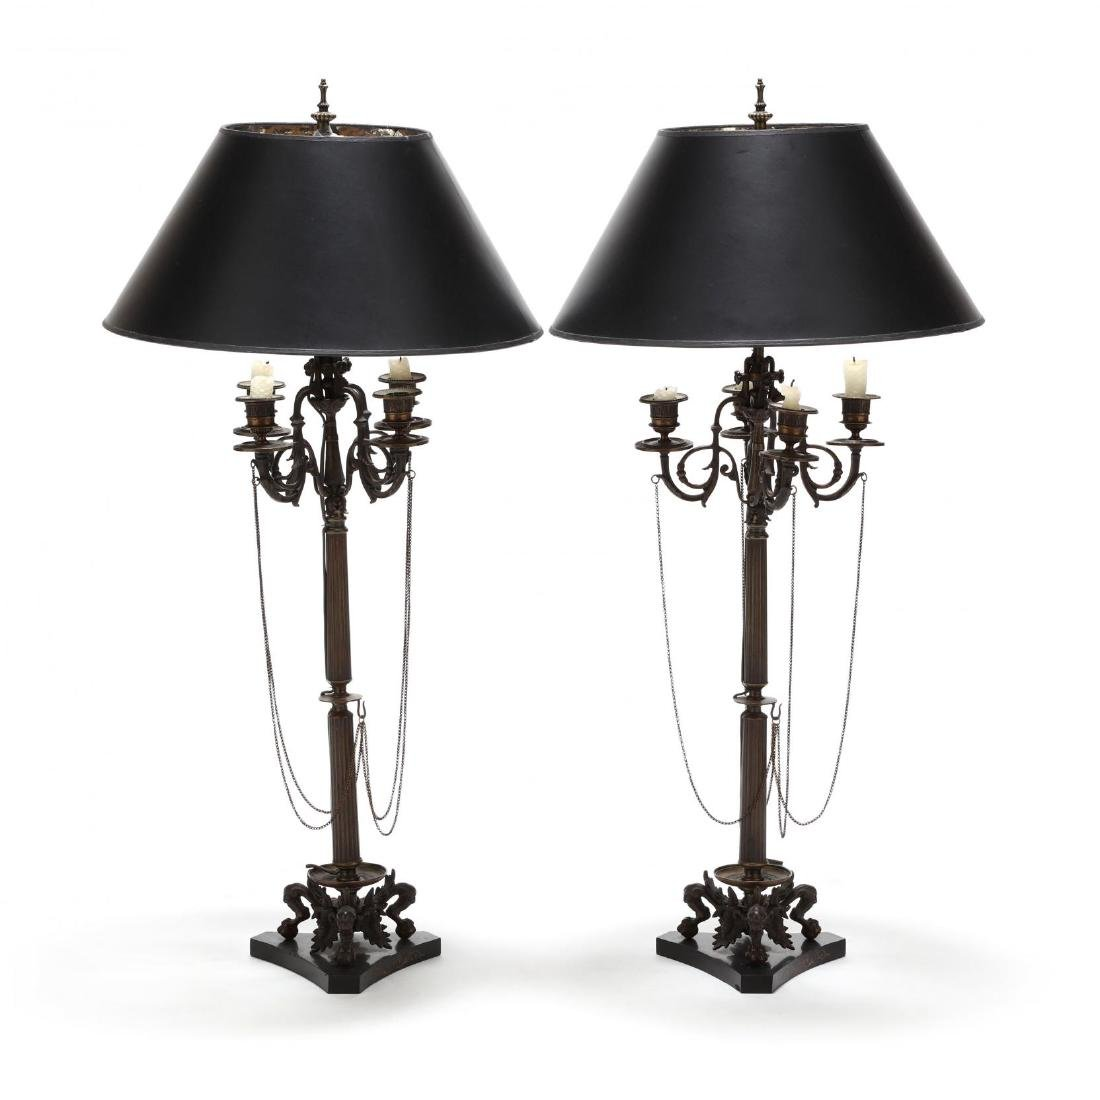 Pair of English Renaissance Revival Candelabra